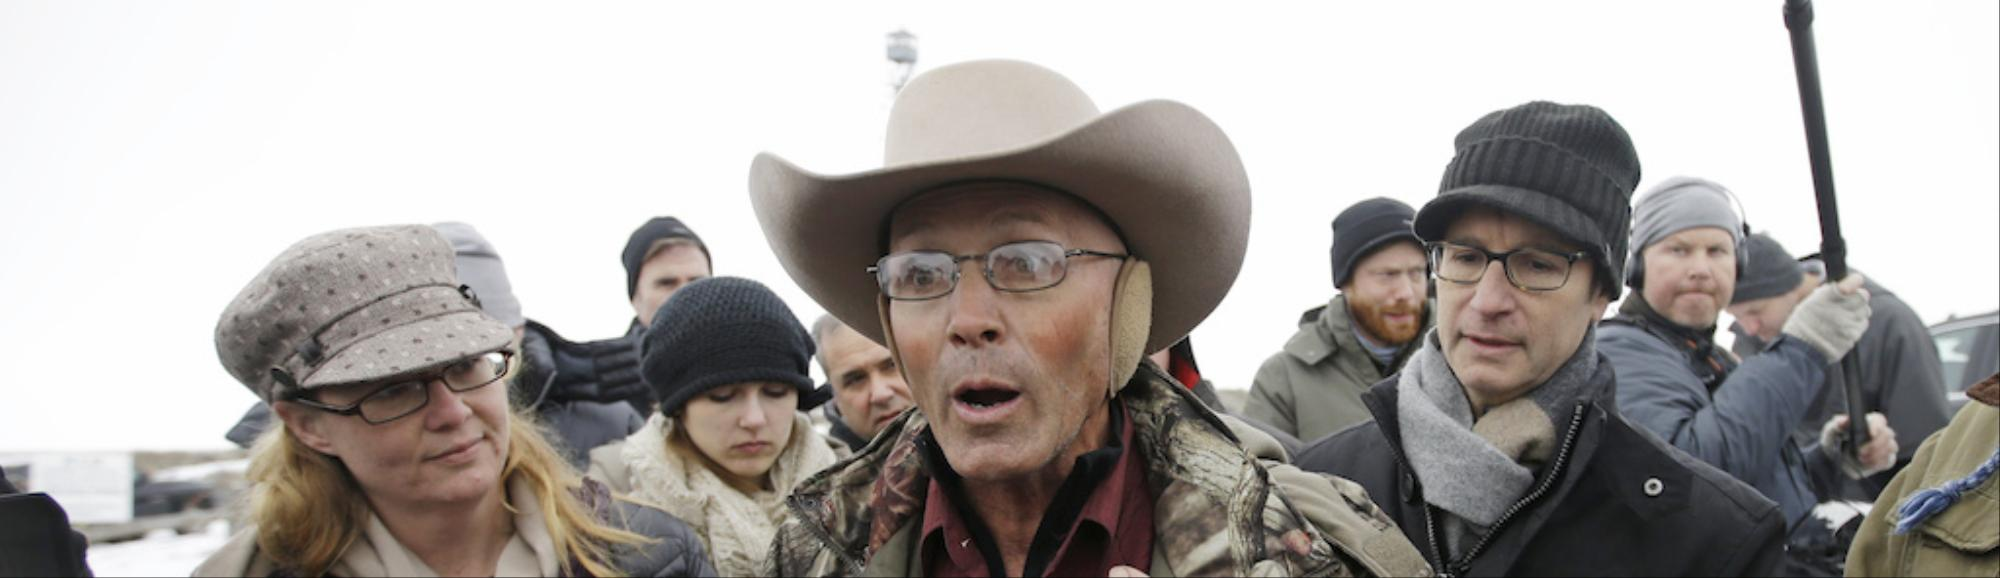 The Oregon Militia Spokesman Has Been Killed and Its Leaders Detained After FBI Confrontation